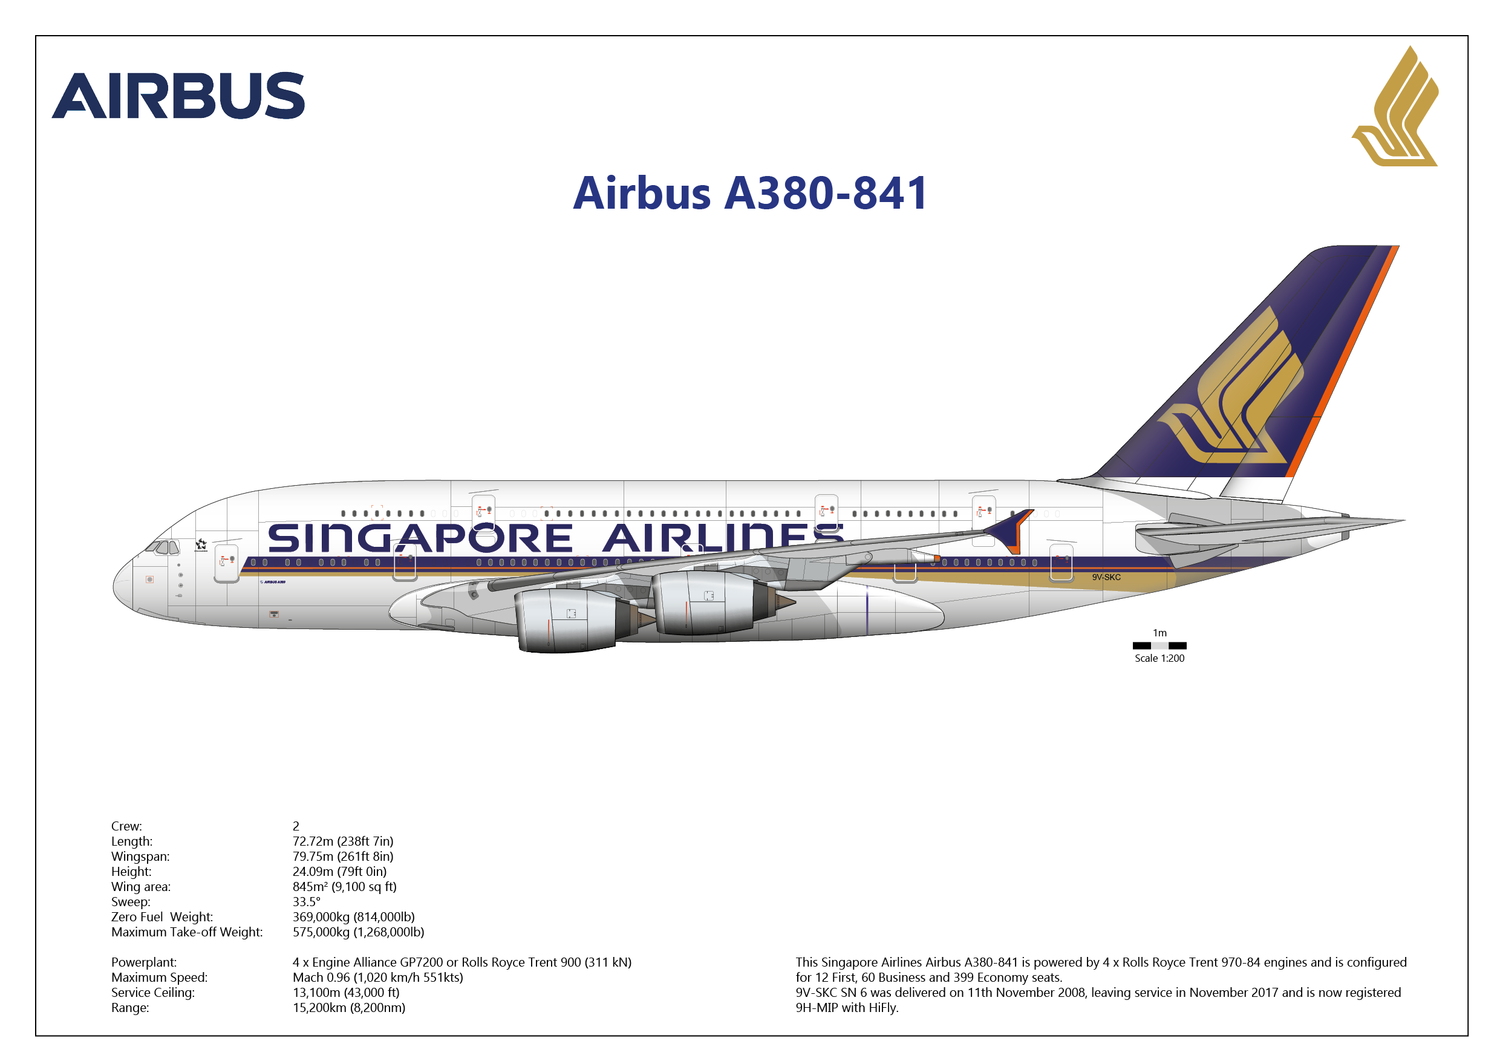 Airbus A380-841 of Singapore Airlines